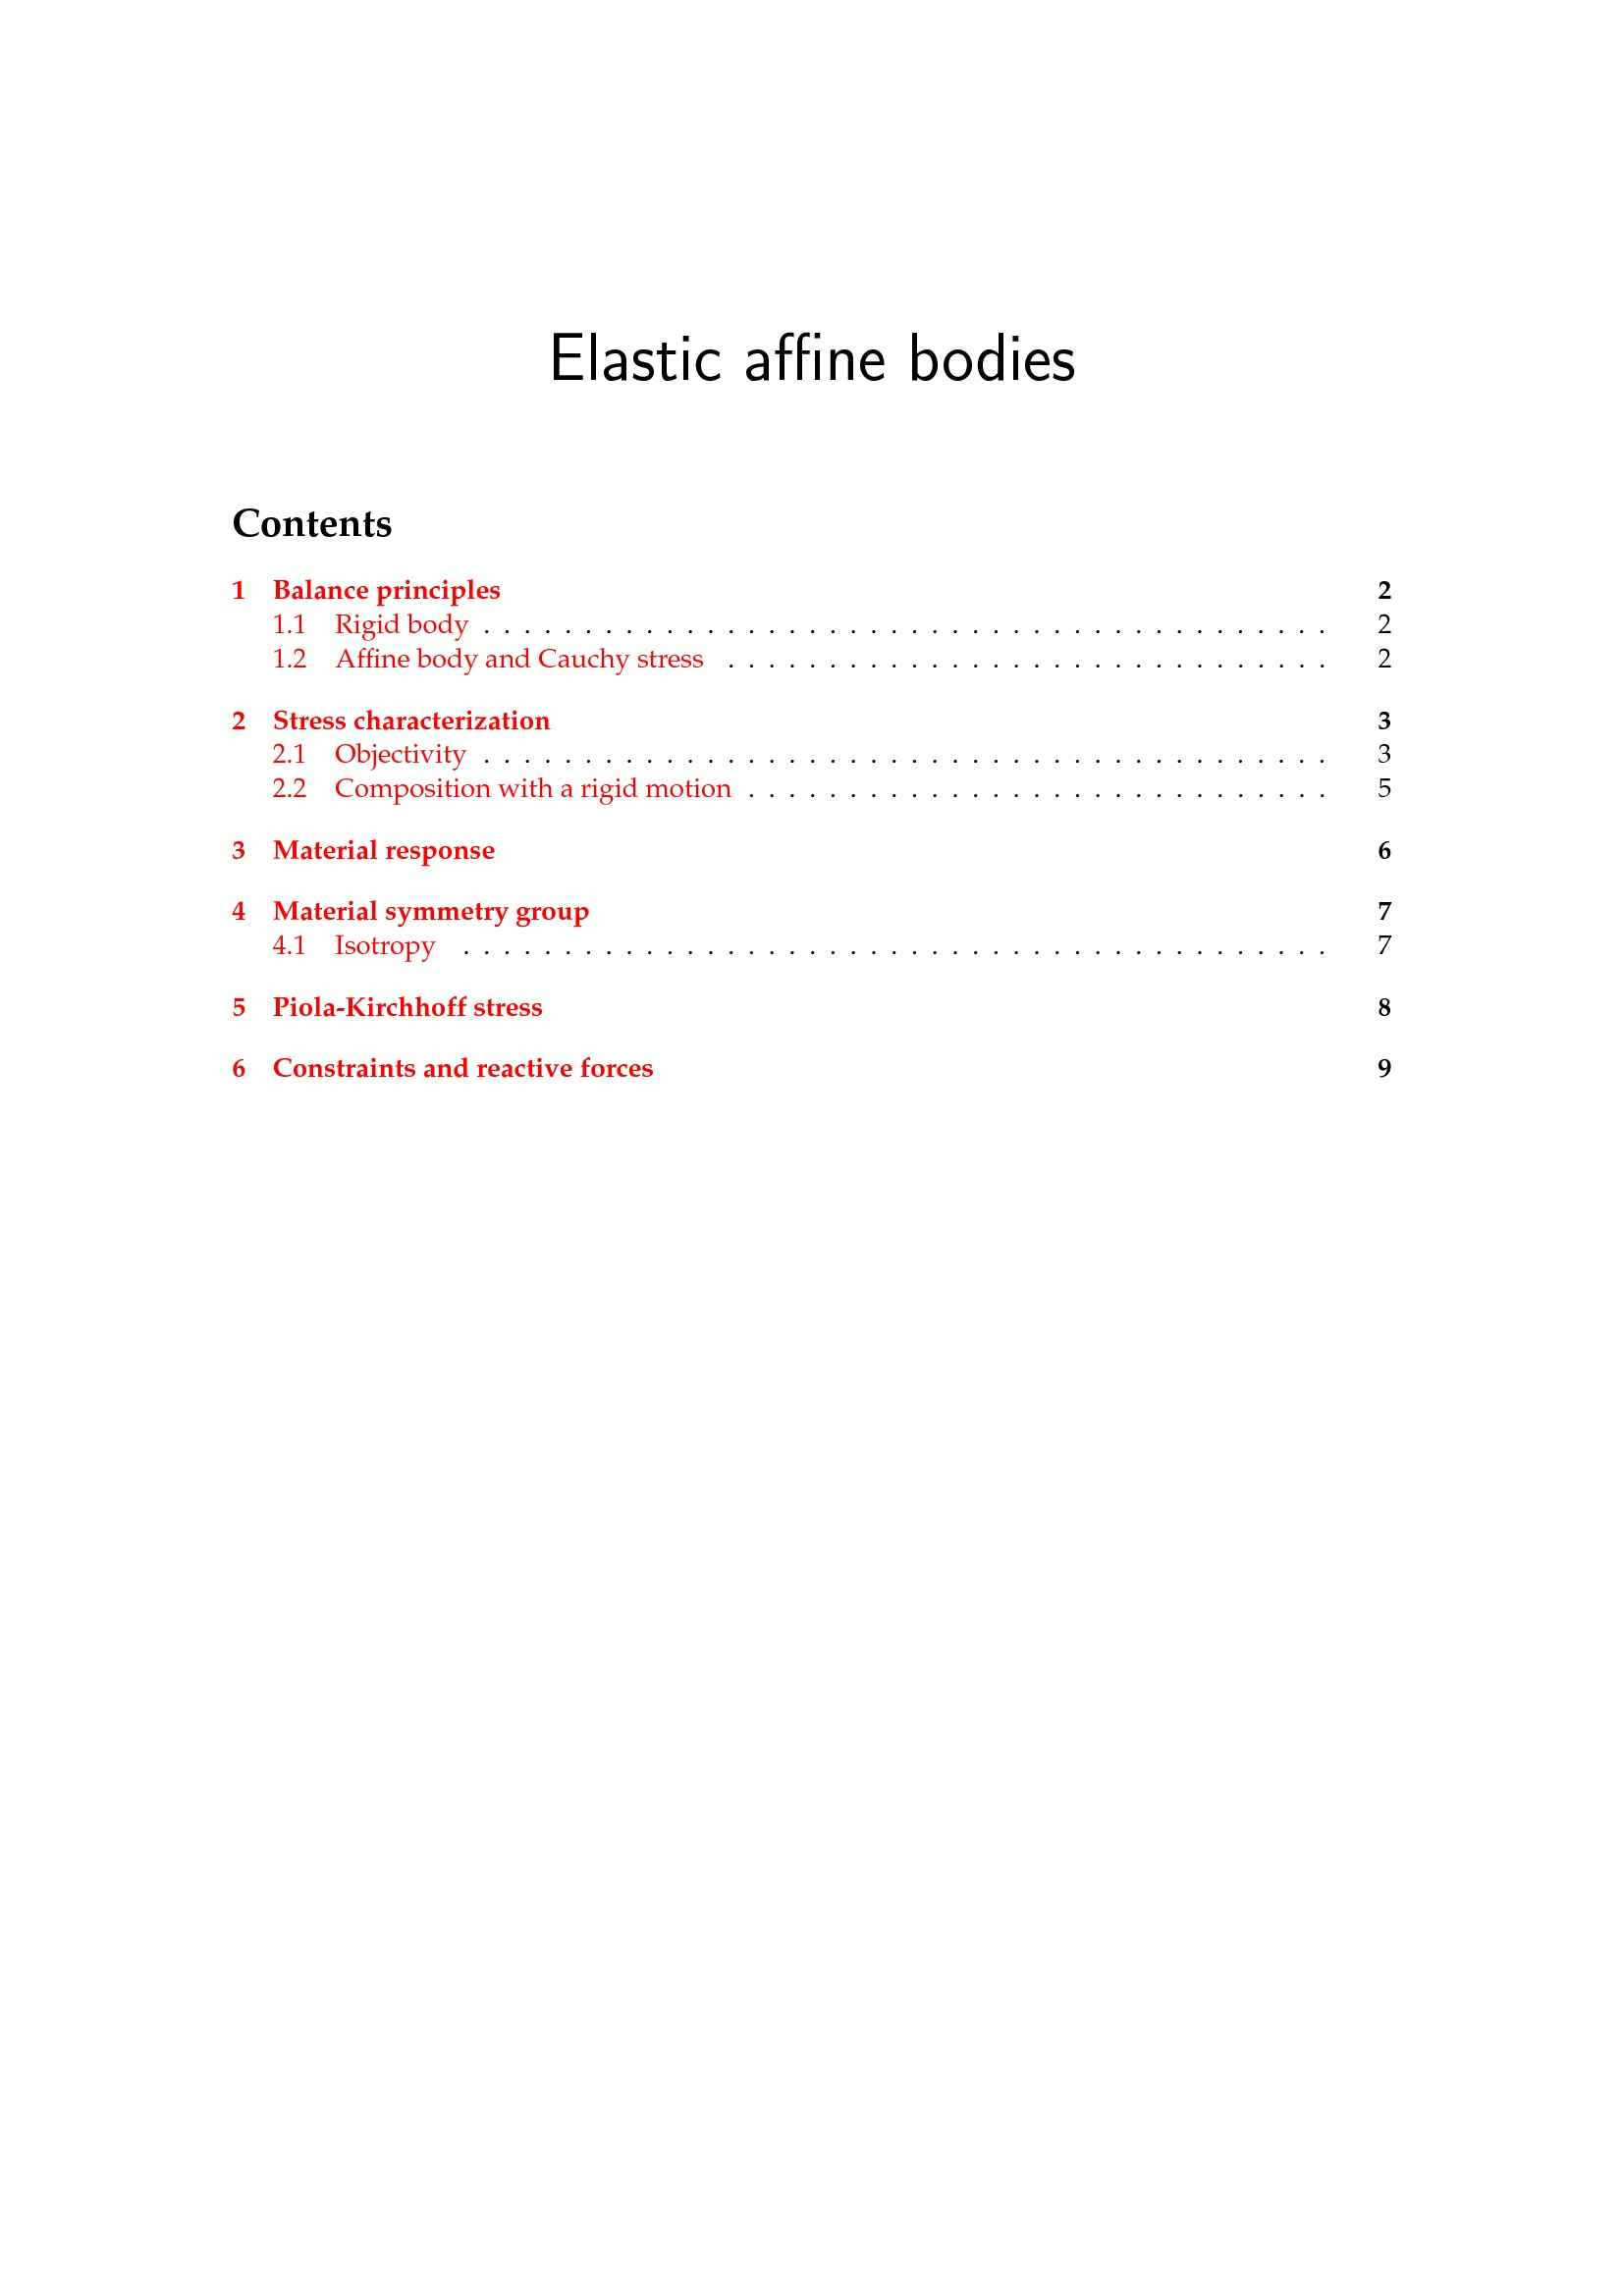 Bodies, elastic affine